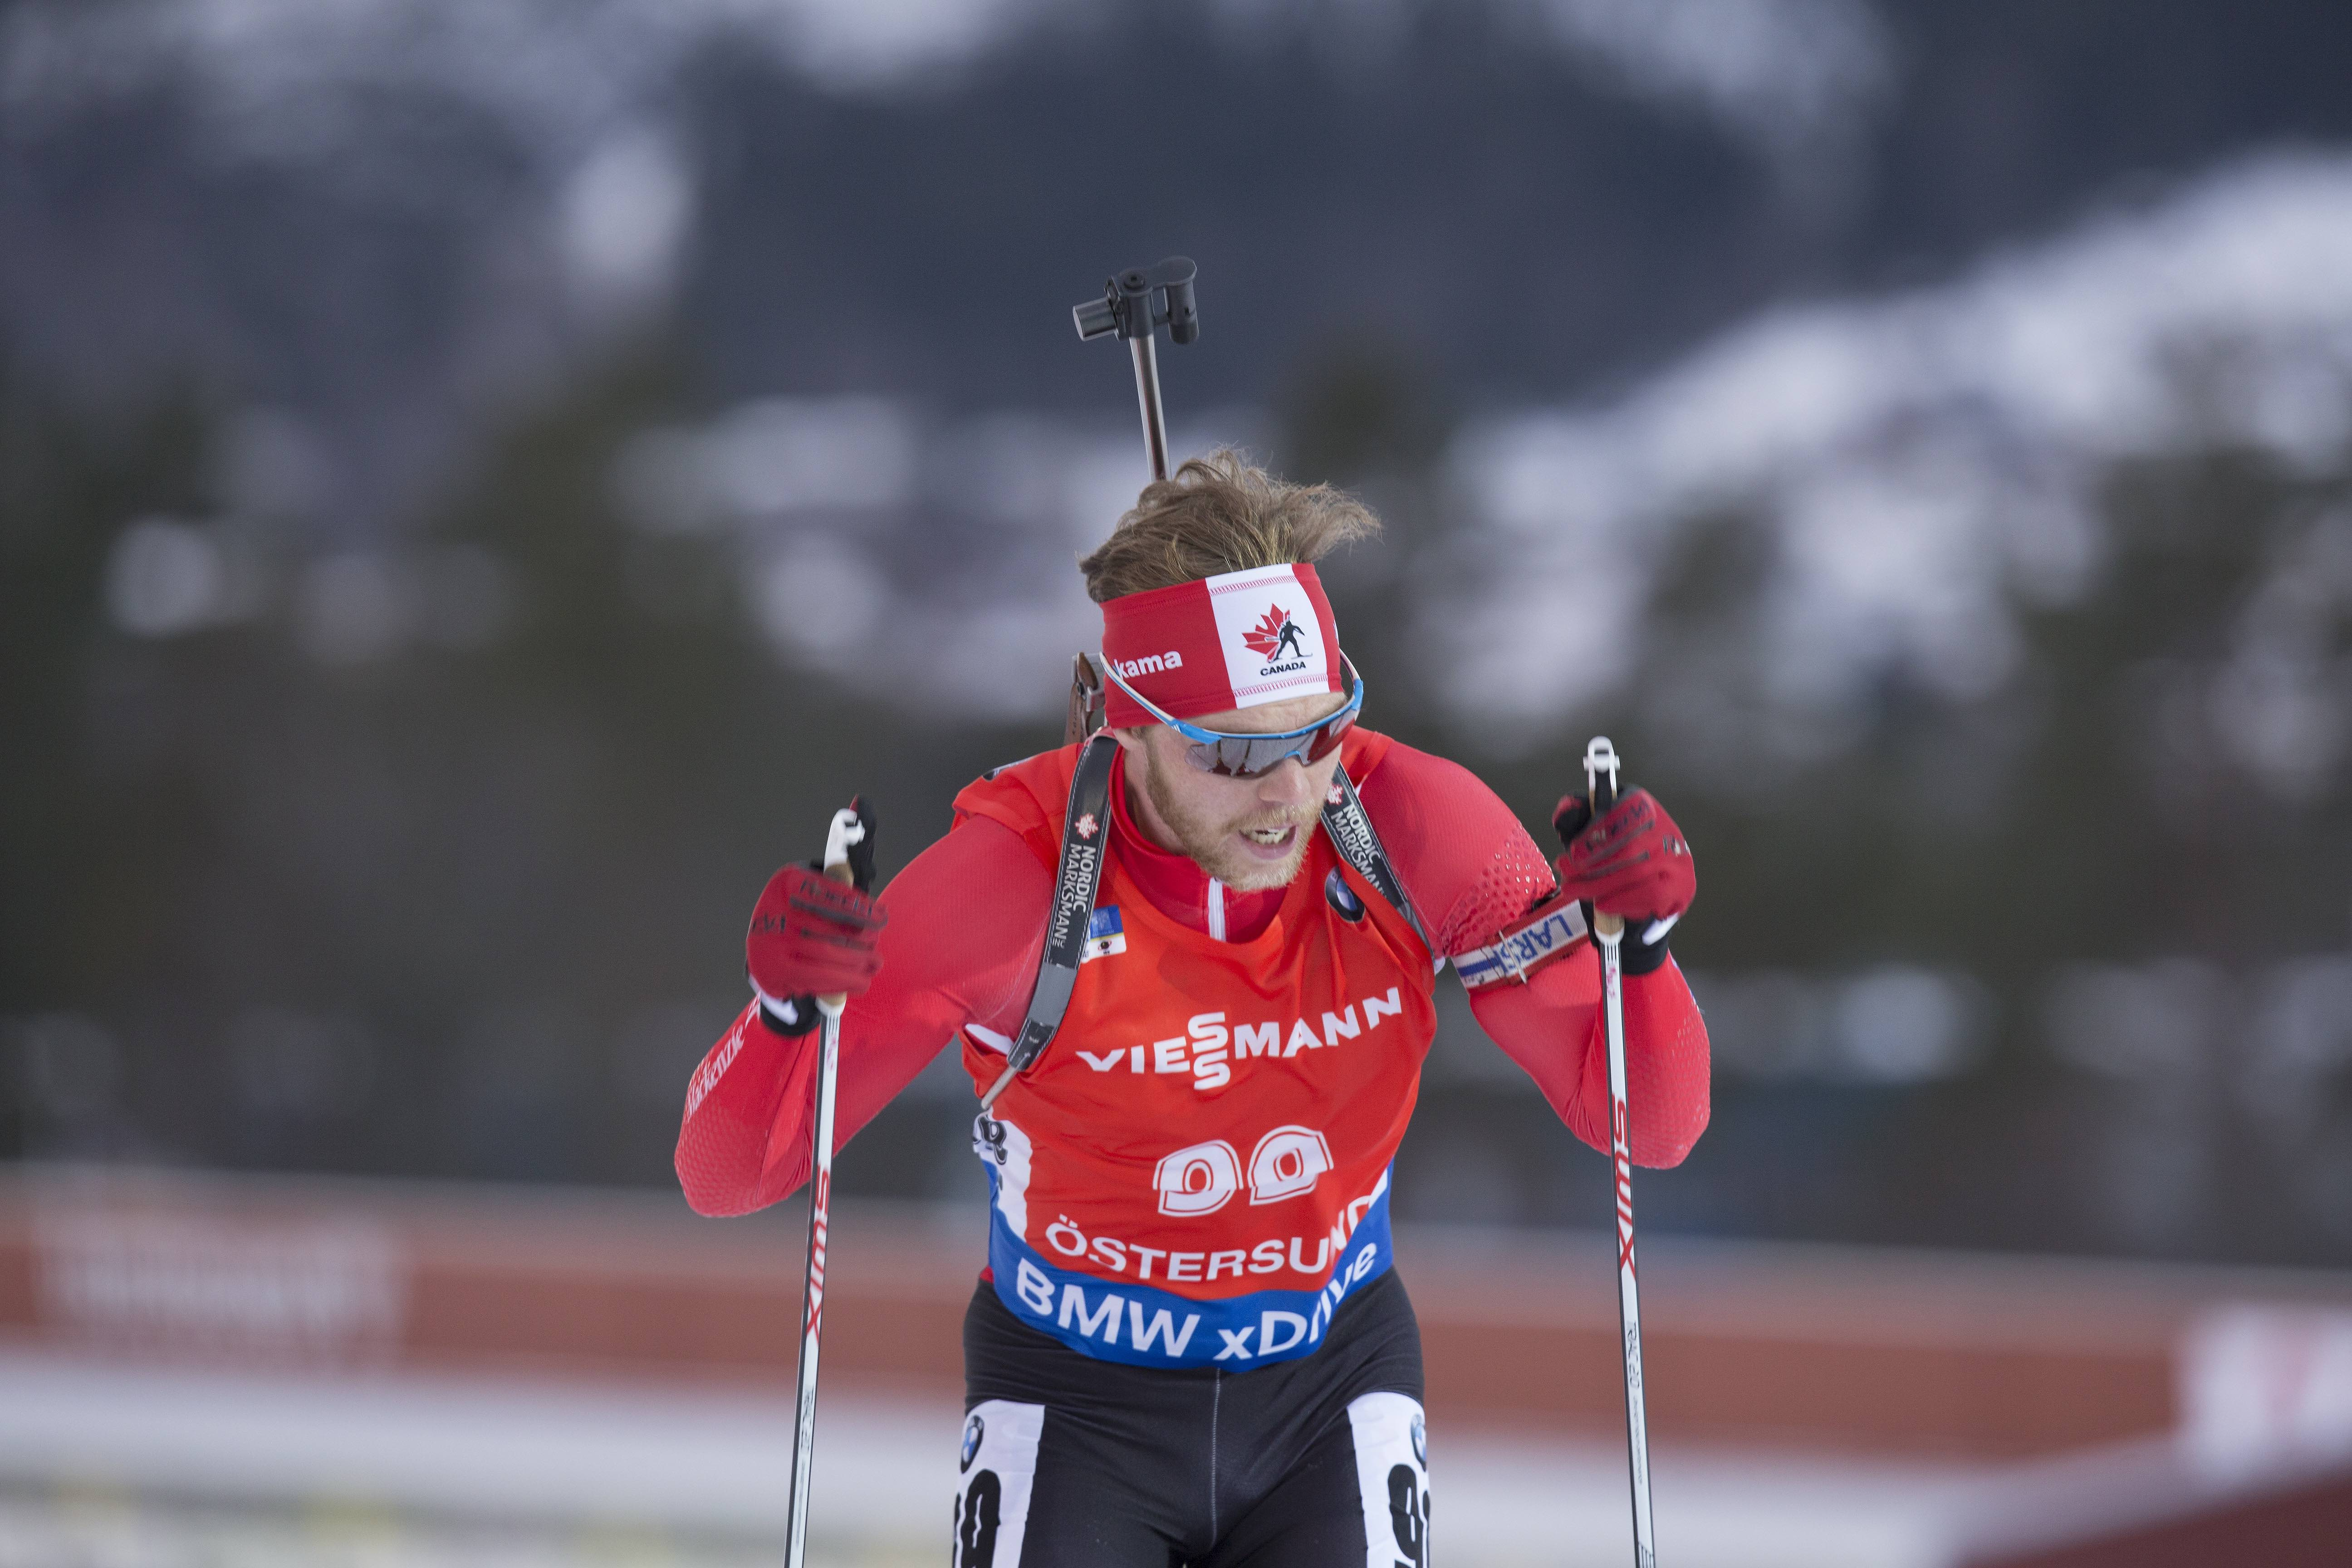 Macx Davies of Canada racing to 10th in the IBU World Cup 10 k sprint in Ostersund, Sweden, last December. It was his career-best result by 30 places. (Photo: Biathlon Canada/NordicFocus)